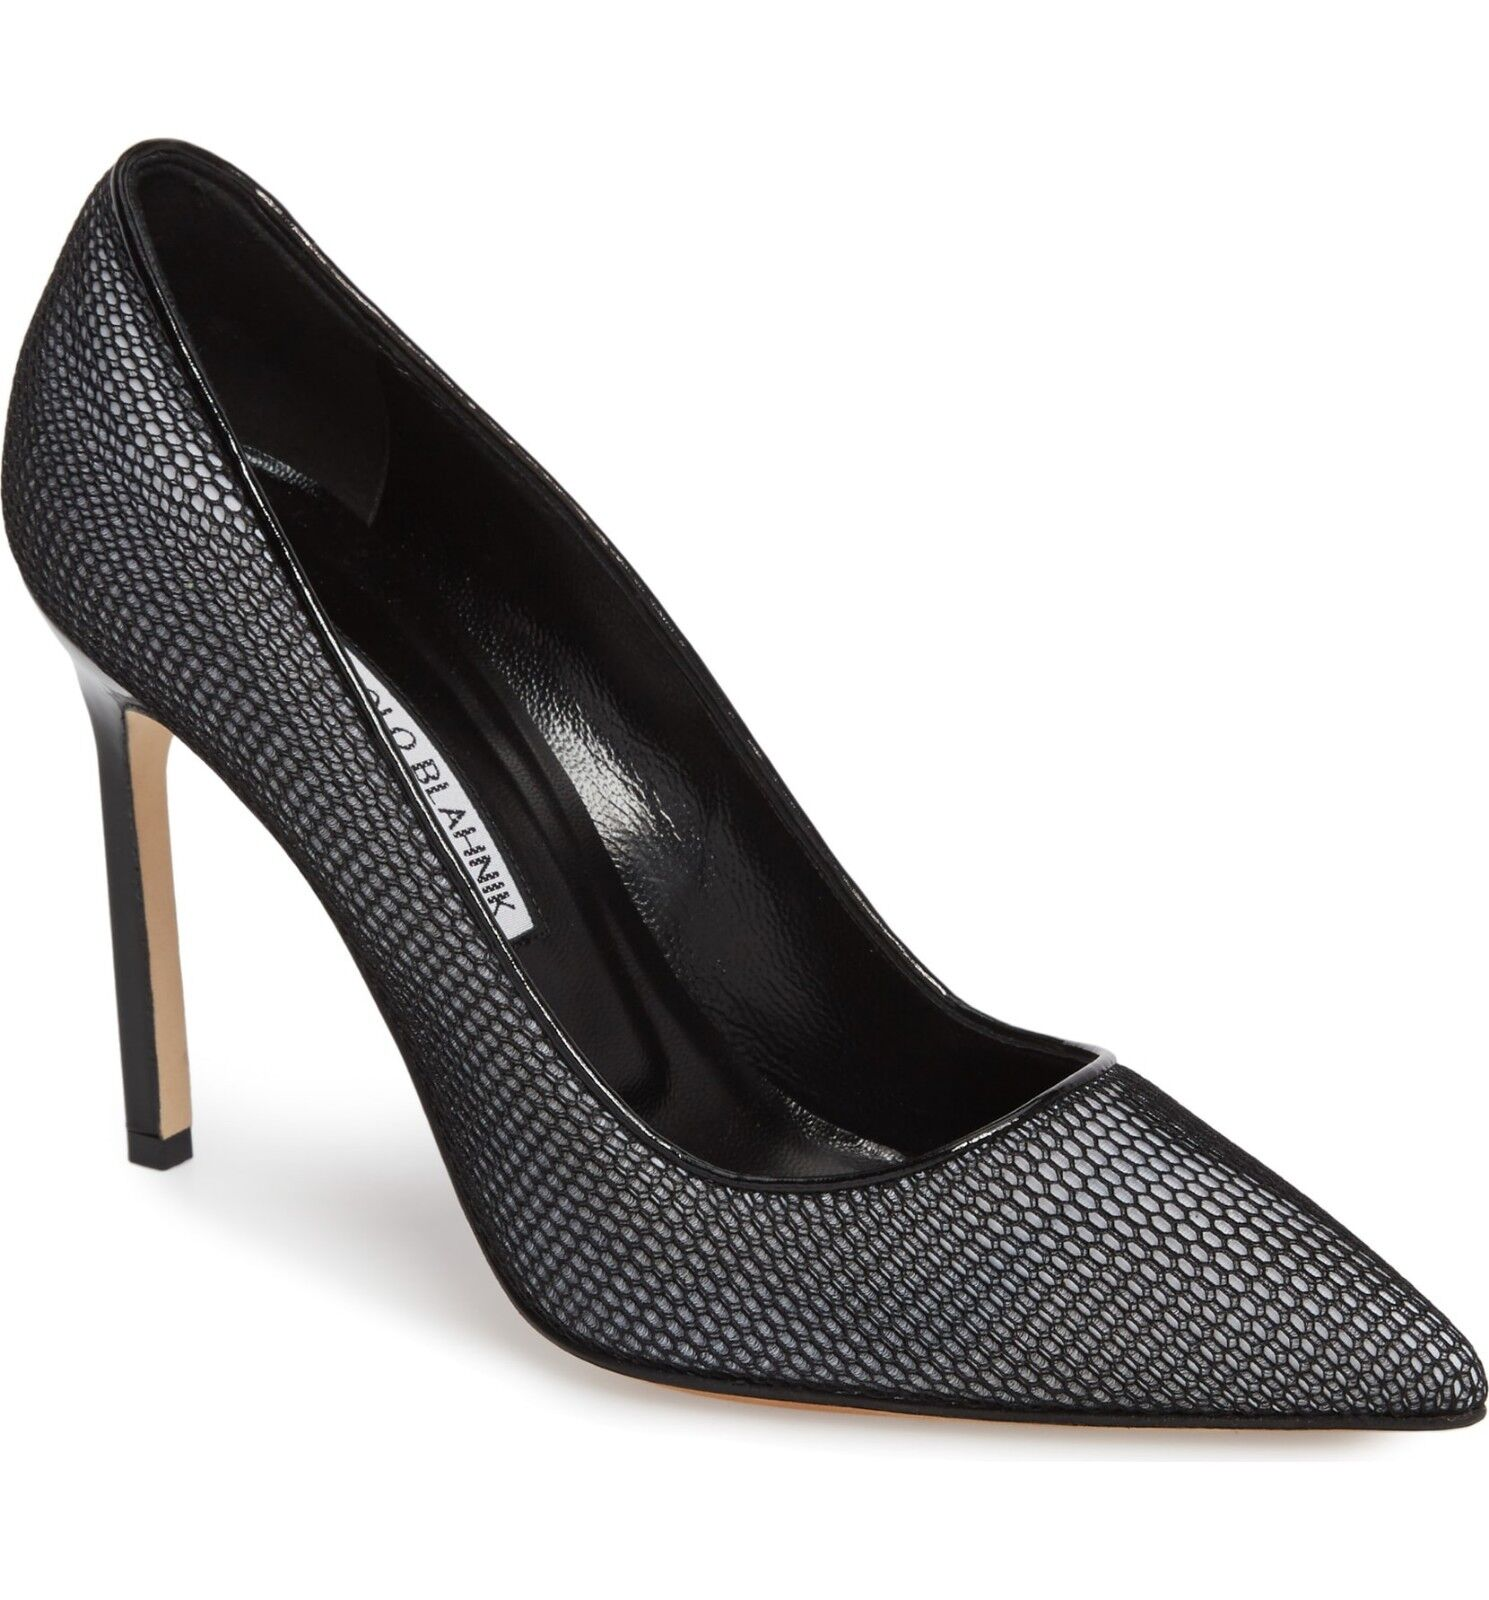 NIB Manolo Blahnik BB 105 Mesh Overlay Pointy Toe Pump shoes Black & White 37 -6